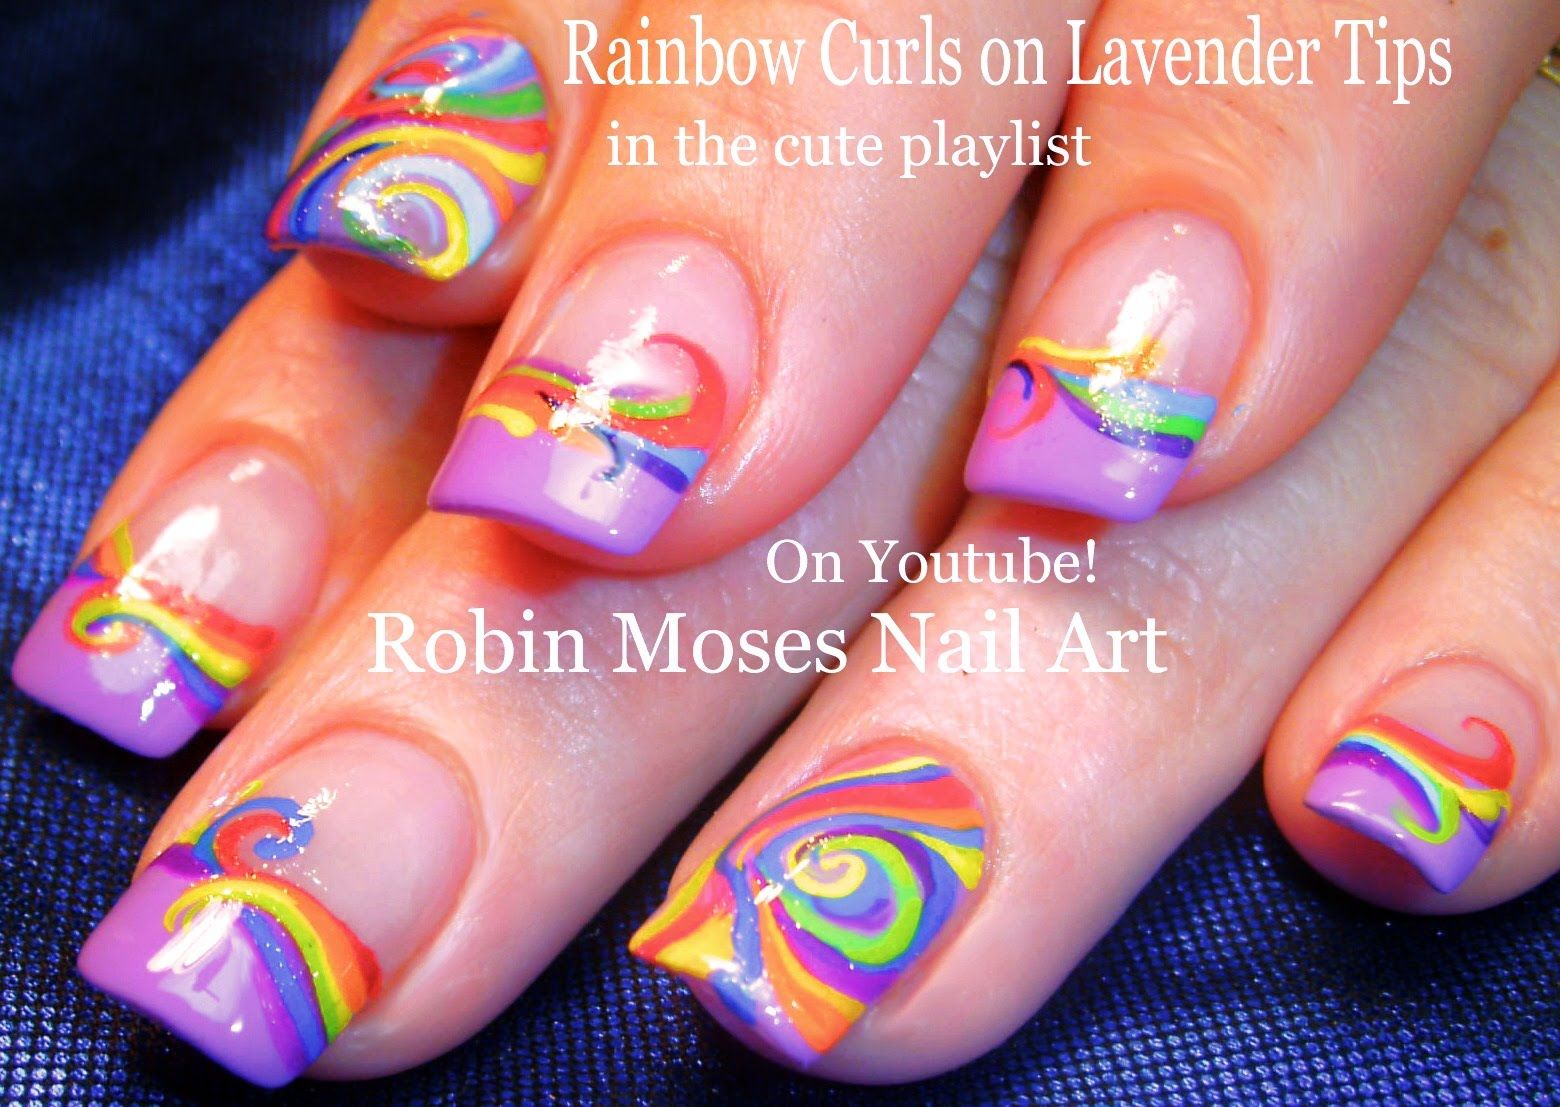 Nail Art | DIY CUTE Rainbow Curl Nails! FUN Nail Design Tutorial ...